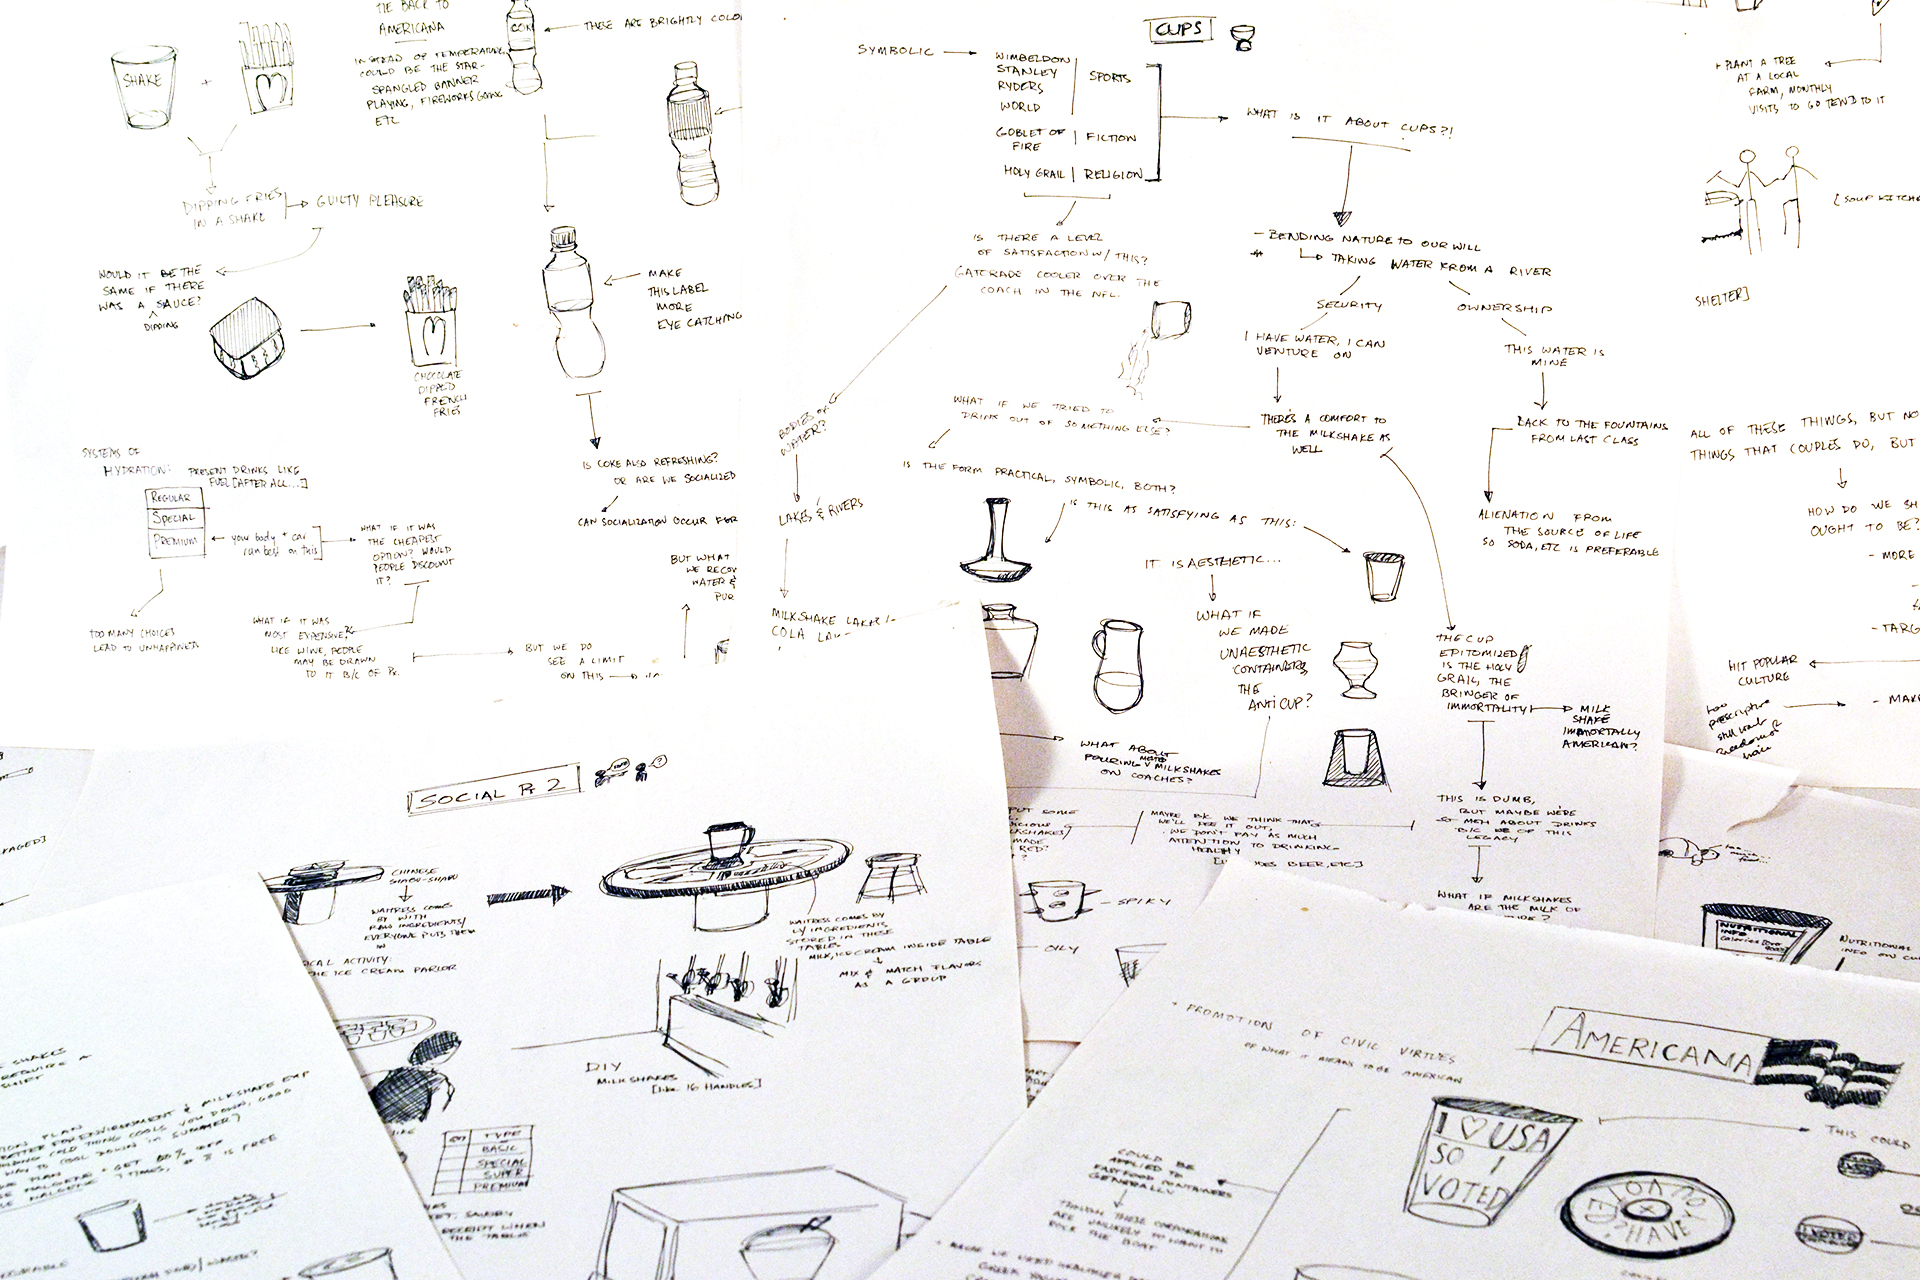 As part of the ideation process, we were asked to come up with 100 redesigns of the object that we threw out.